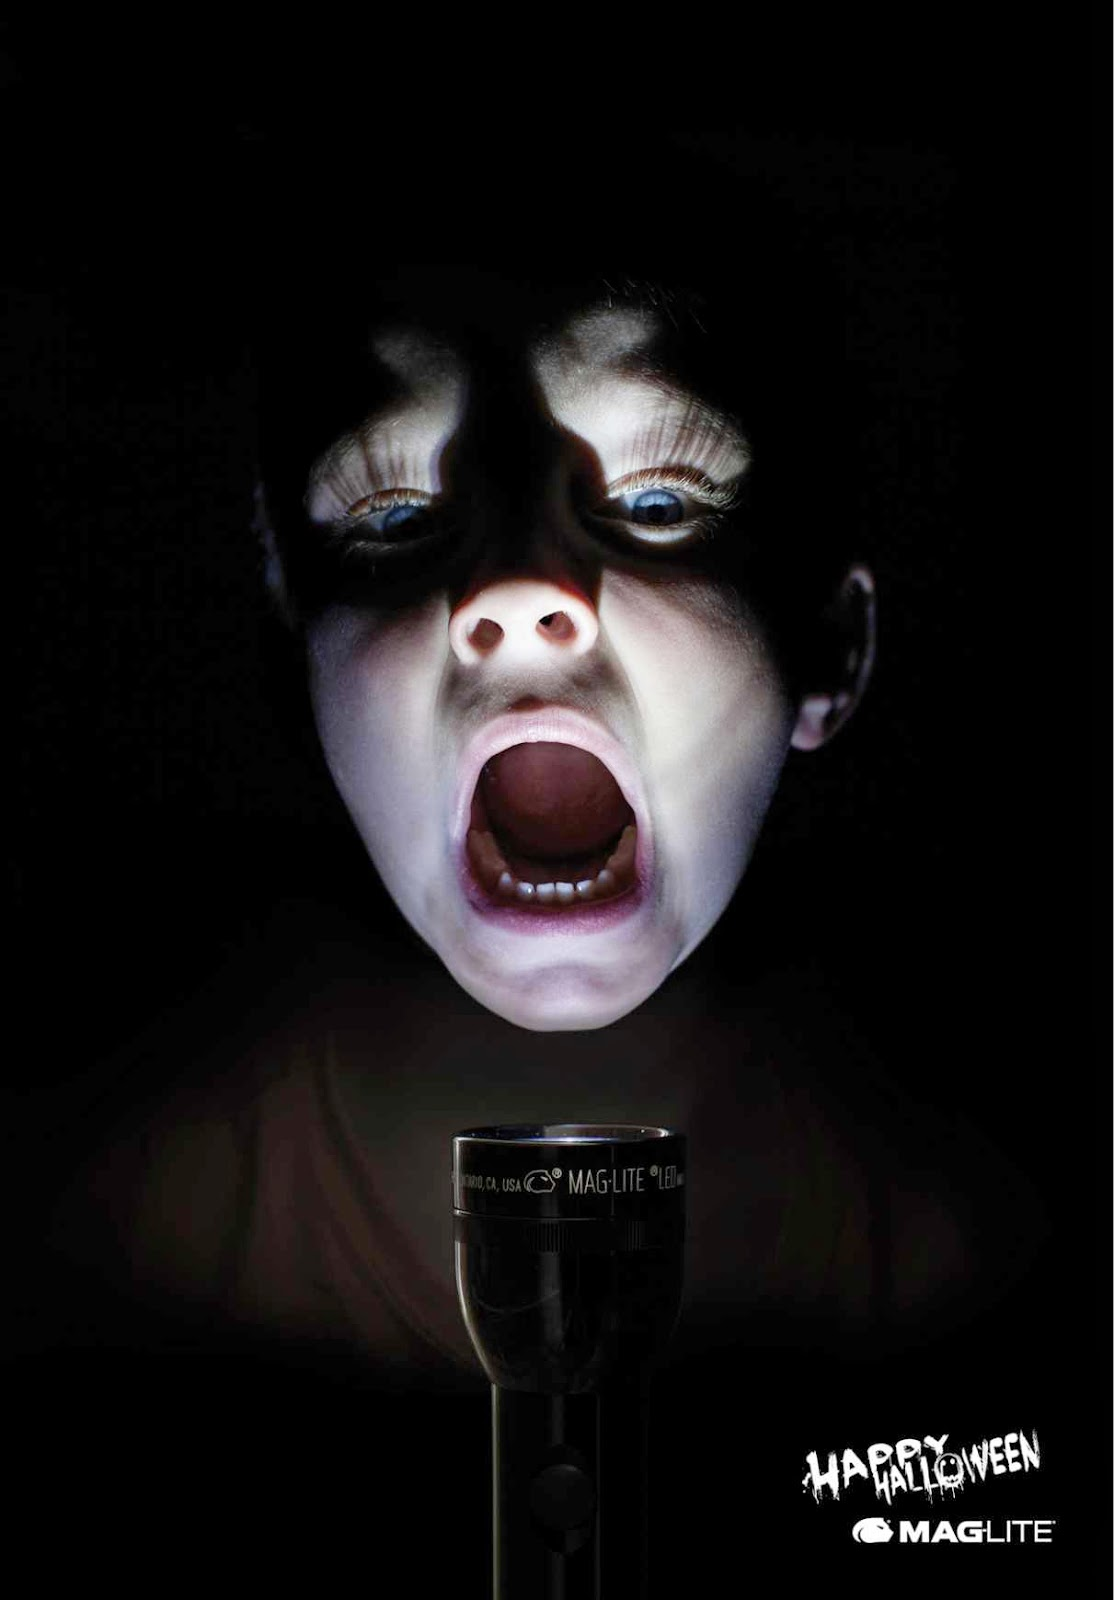 Maglite Halloween ad